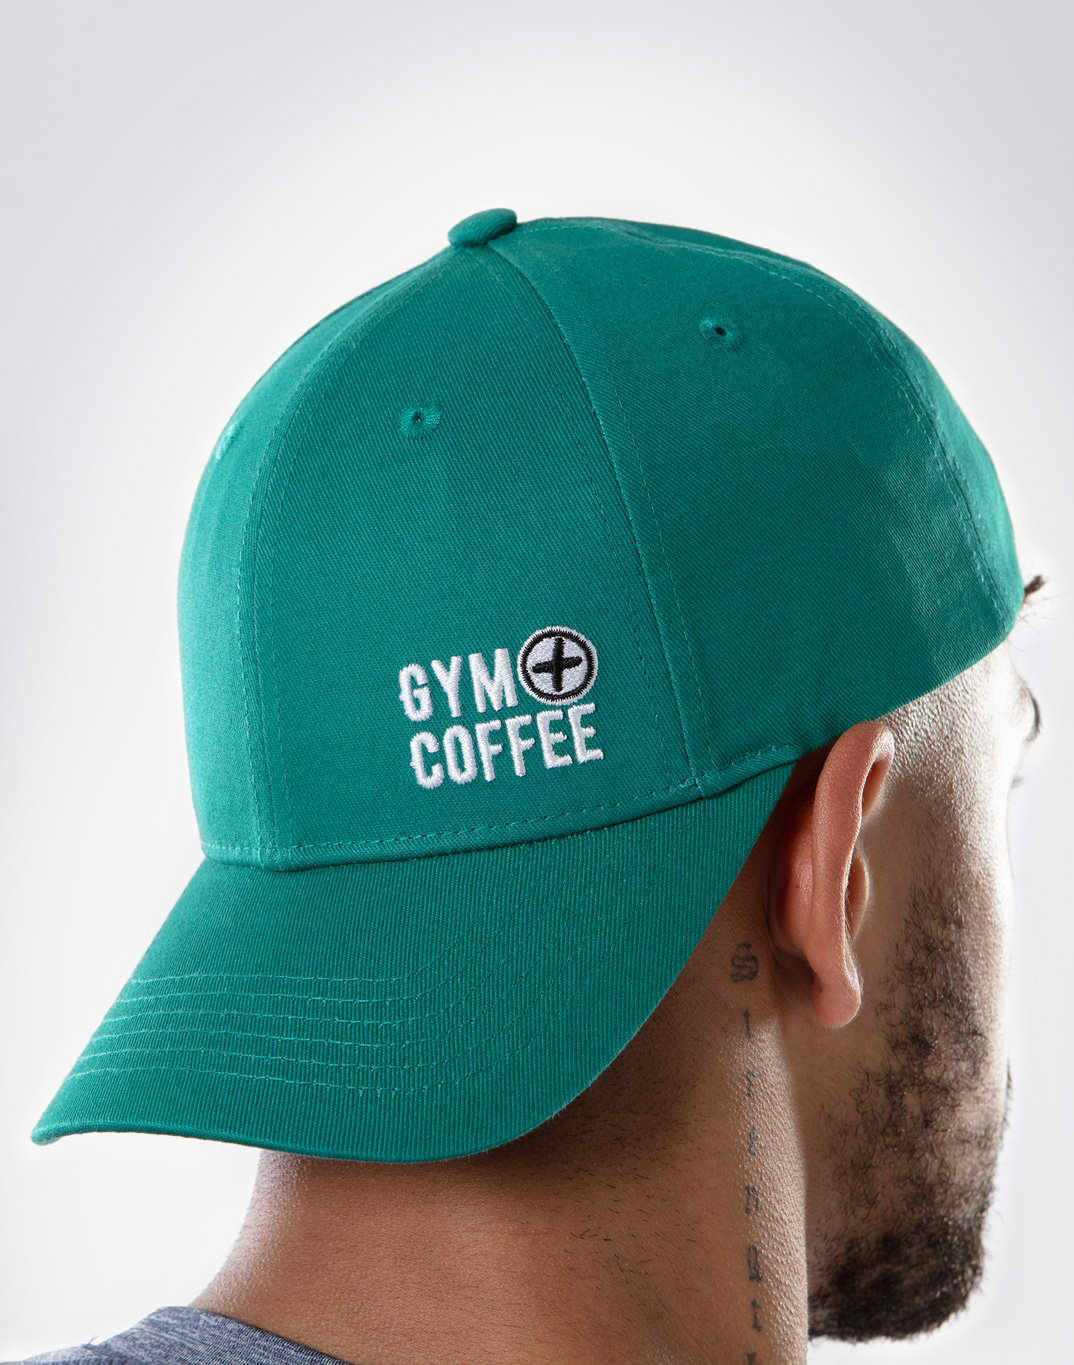 Gym Plus Coffee Hat Hats Off Cap in Green Designed in Ireland